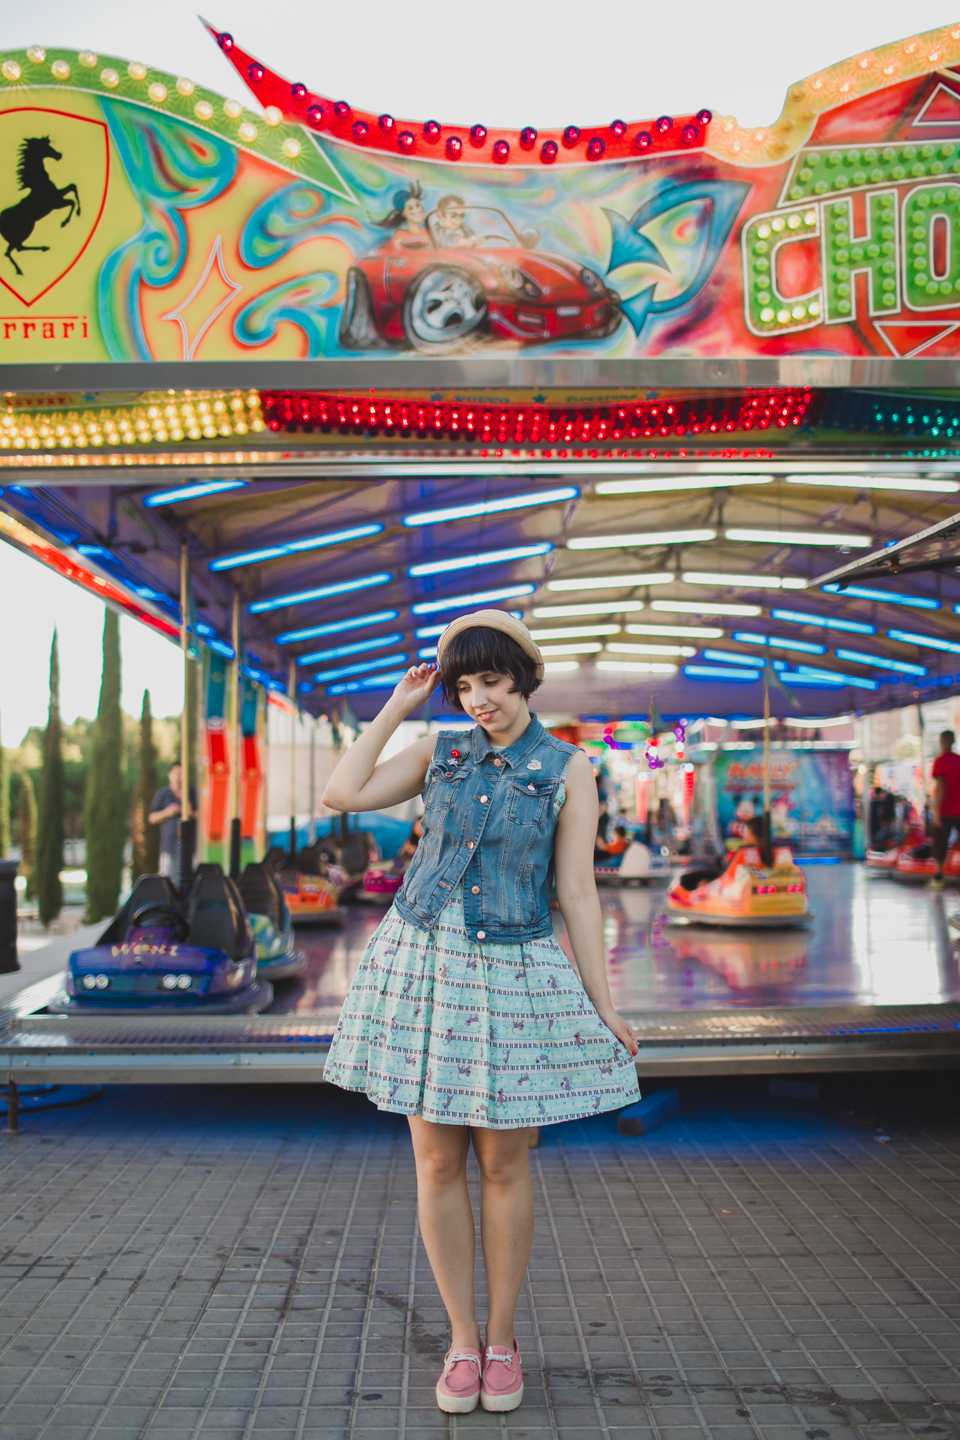 Bumper cars at the funfair - The cat, you and us